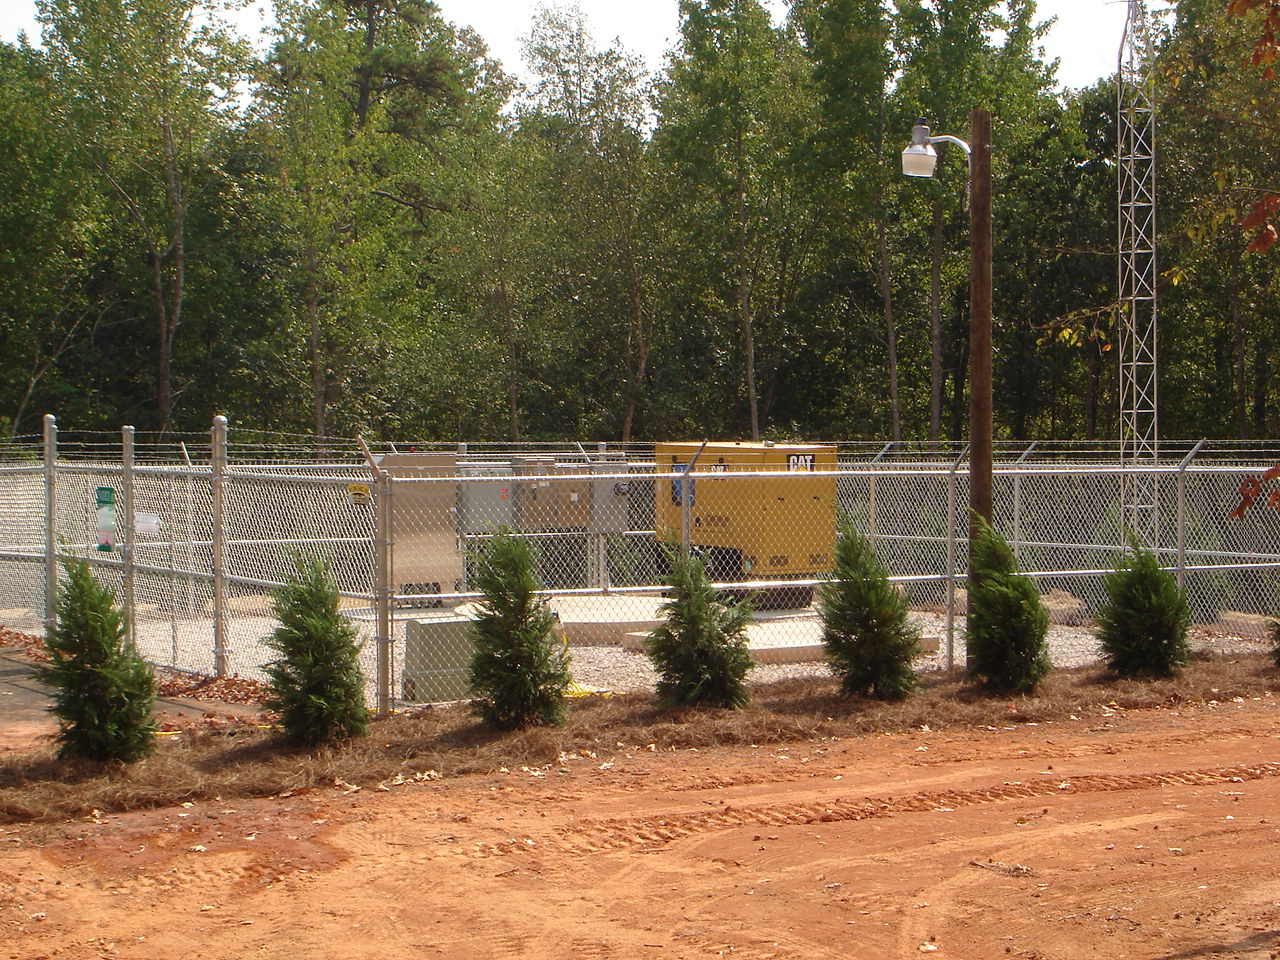 Paddocks Pump Station - Installed new service panels, pump controls, and generator.